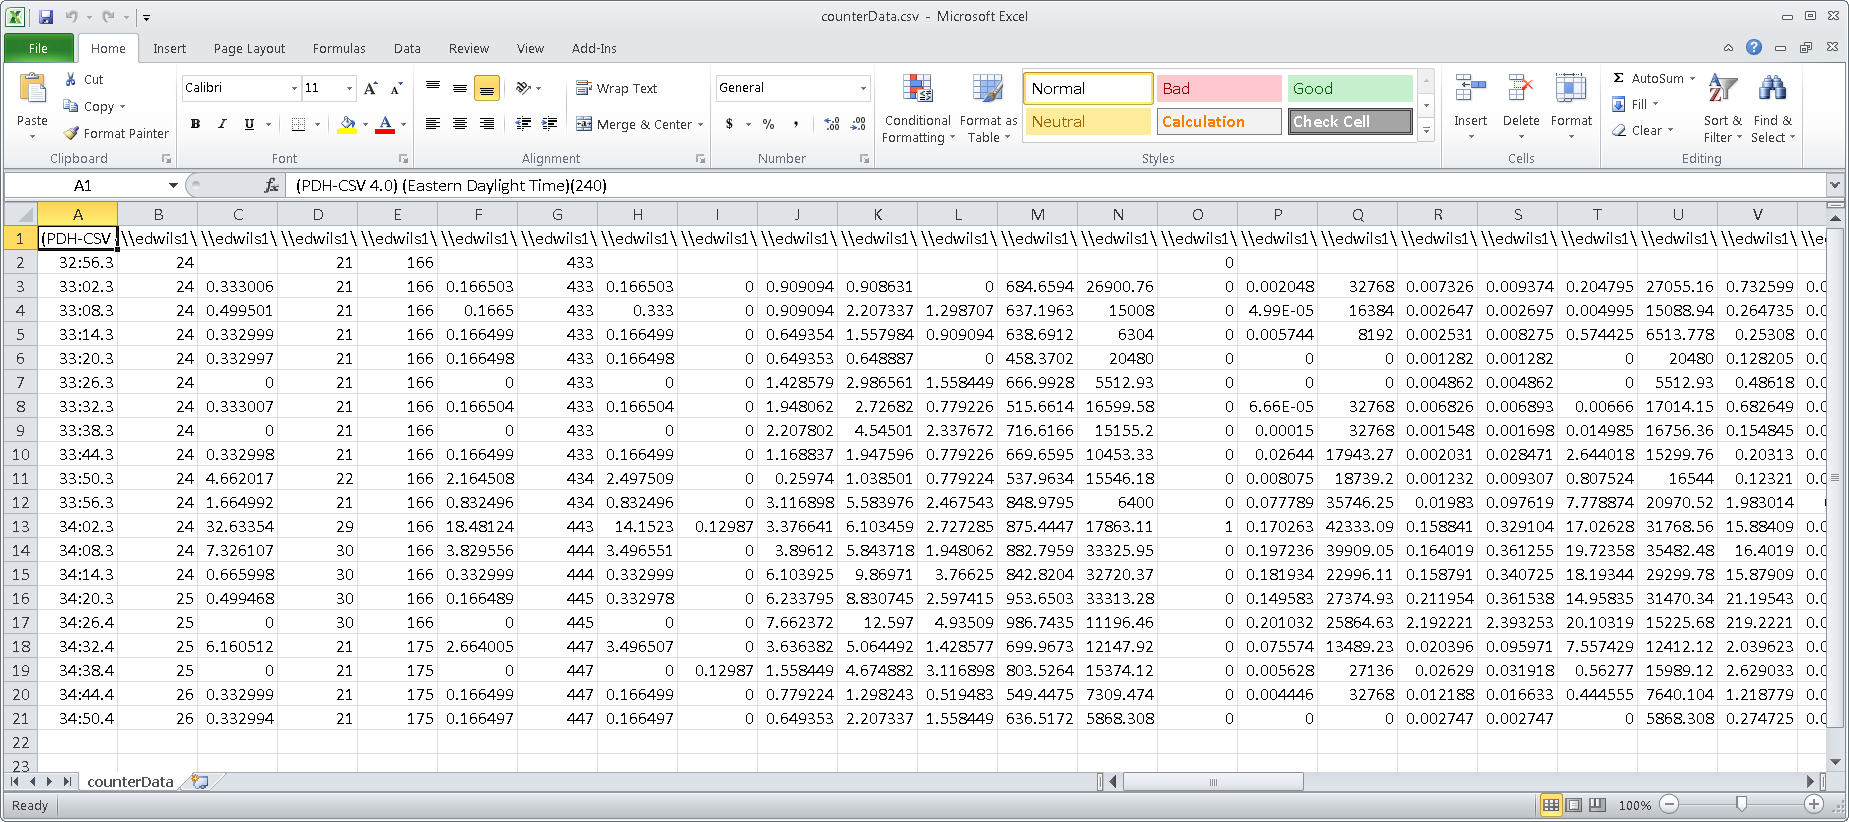 Image of CSV file created by running script and exporting counter information